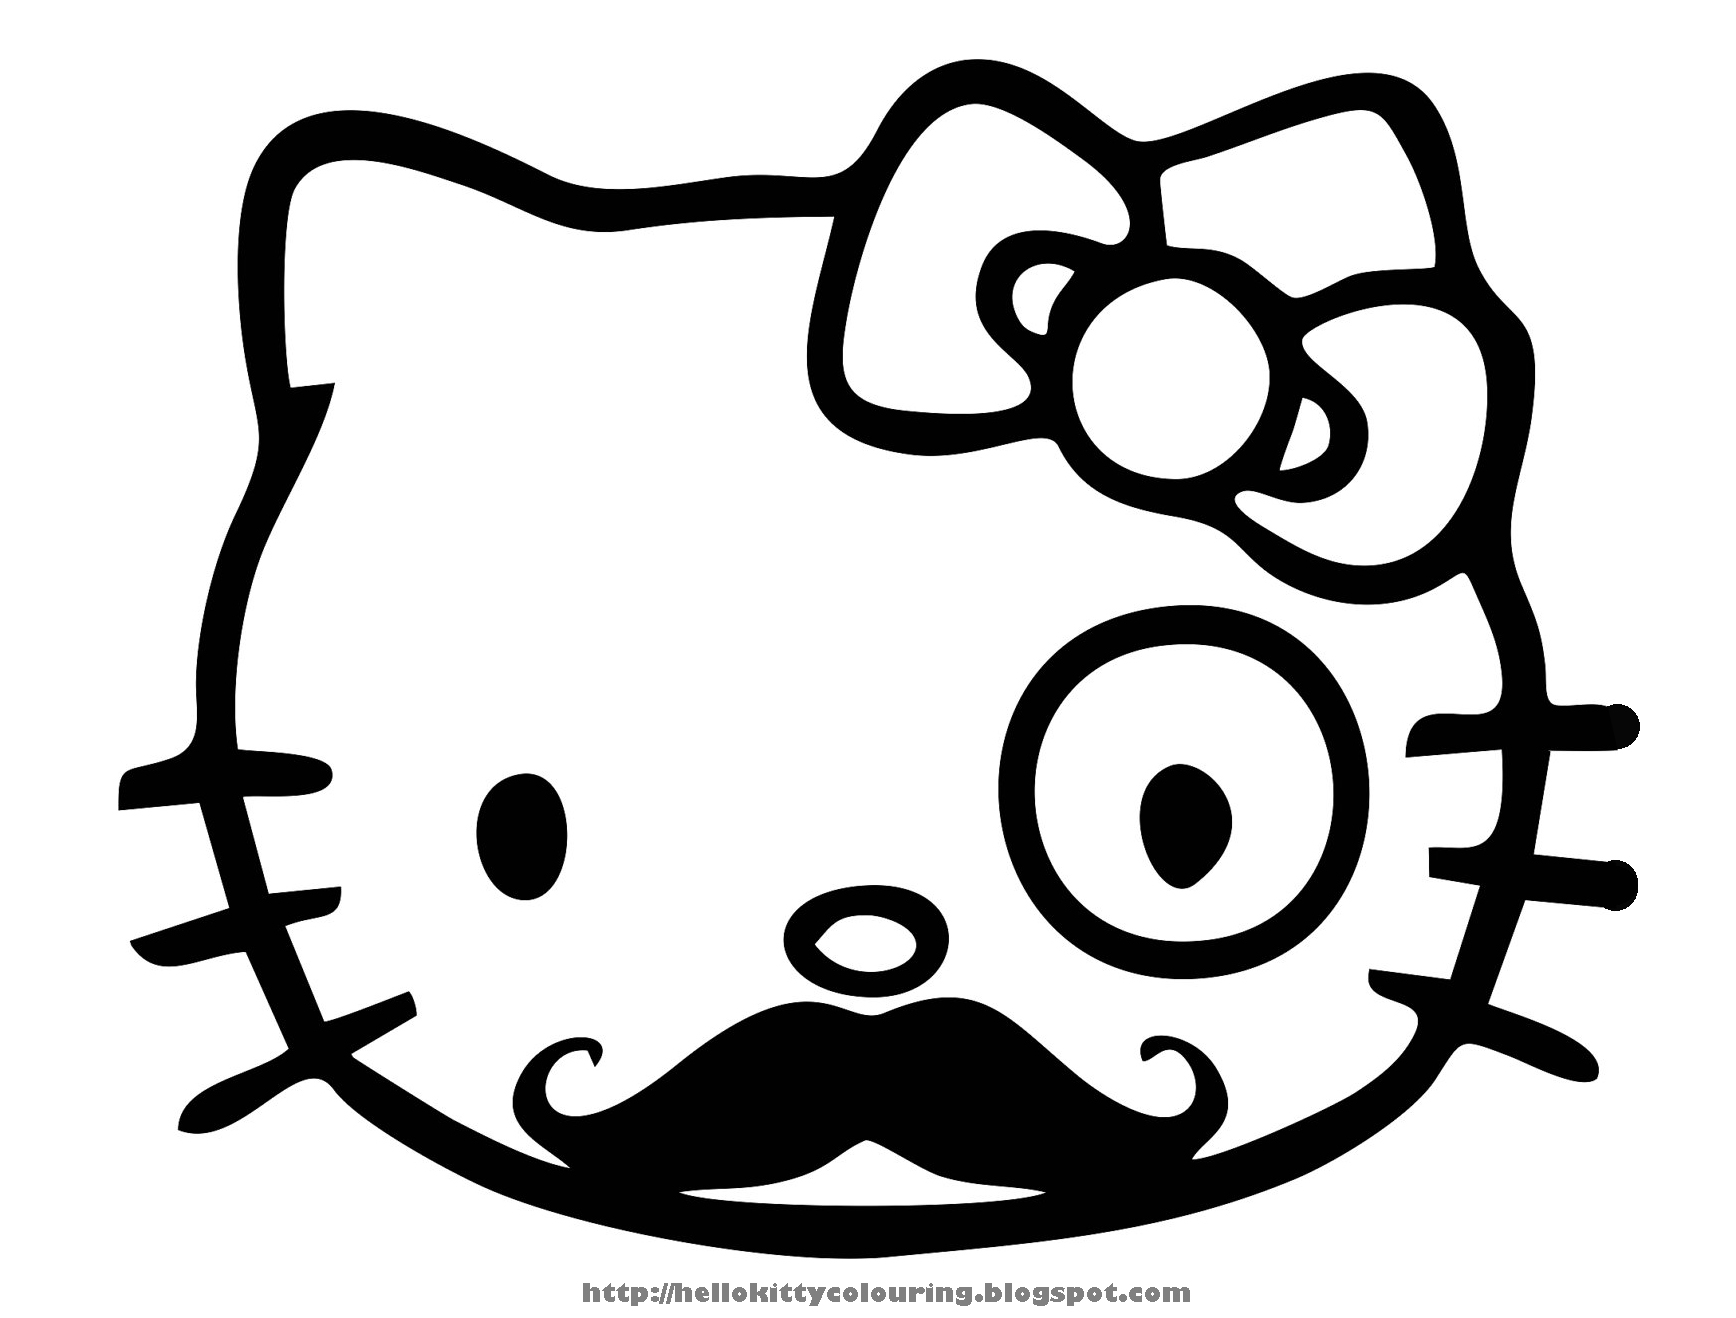 hello kitty color page hello kitty coloring pages fantasy coloring pages kitty hello color page